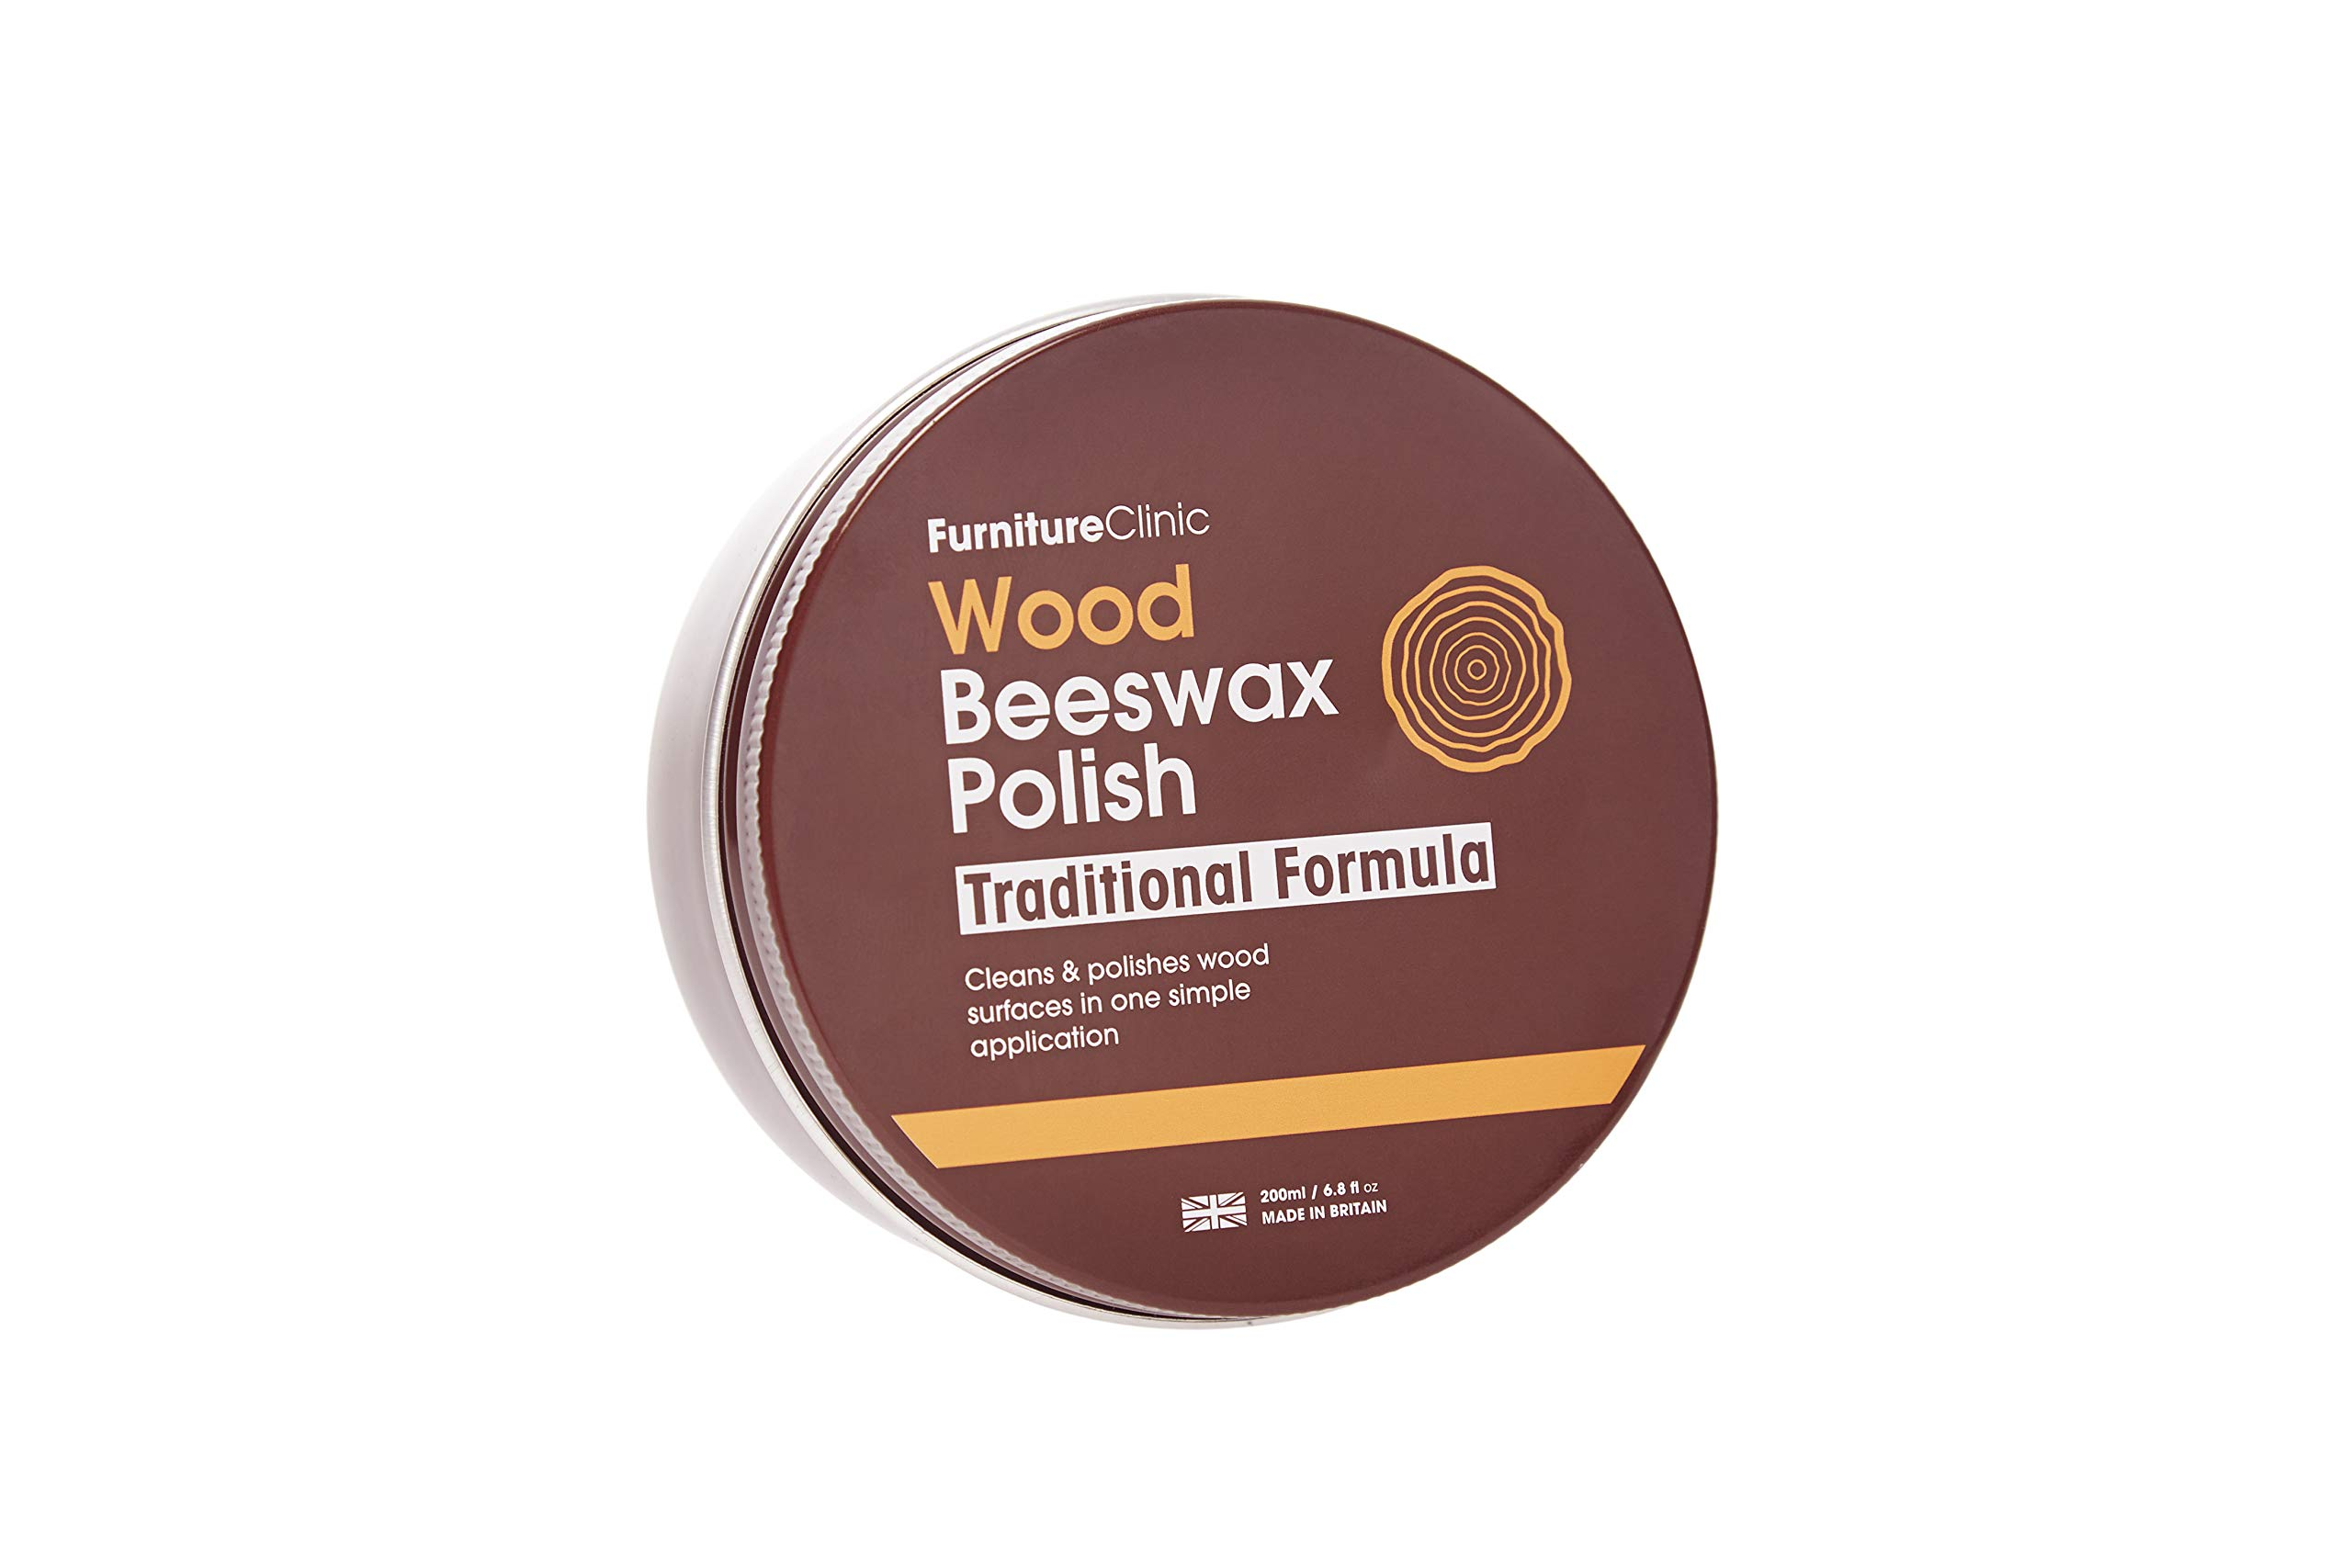 Furniture Clinic Traditional Beeswax Polish for Wood & Furniture   200ml of Wax for All Wood Types & Colors - Oak, Teak, Dark and Light Wood - Protect and Enhance The Shine - 6.8 Fl Oz